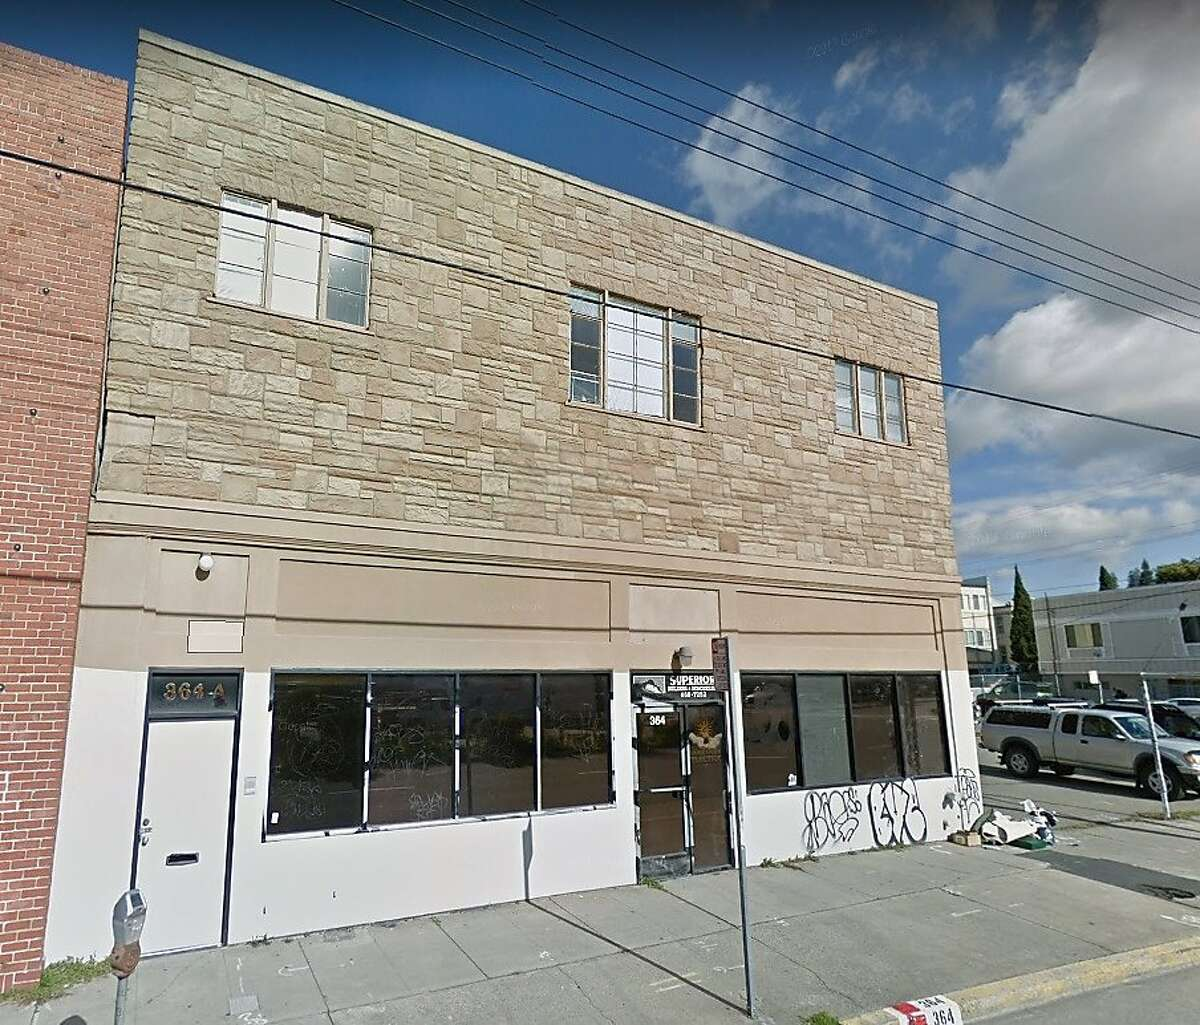 Bierhaus will be located at 364 40th St. in Oakland.